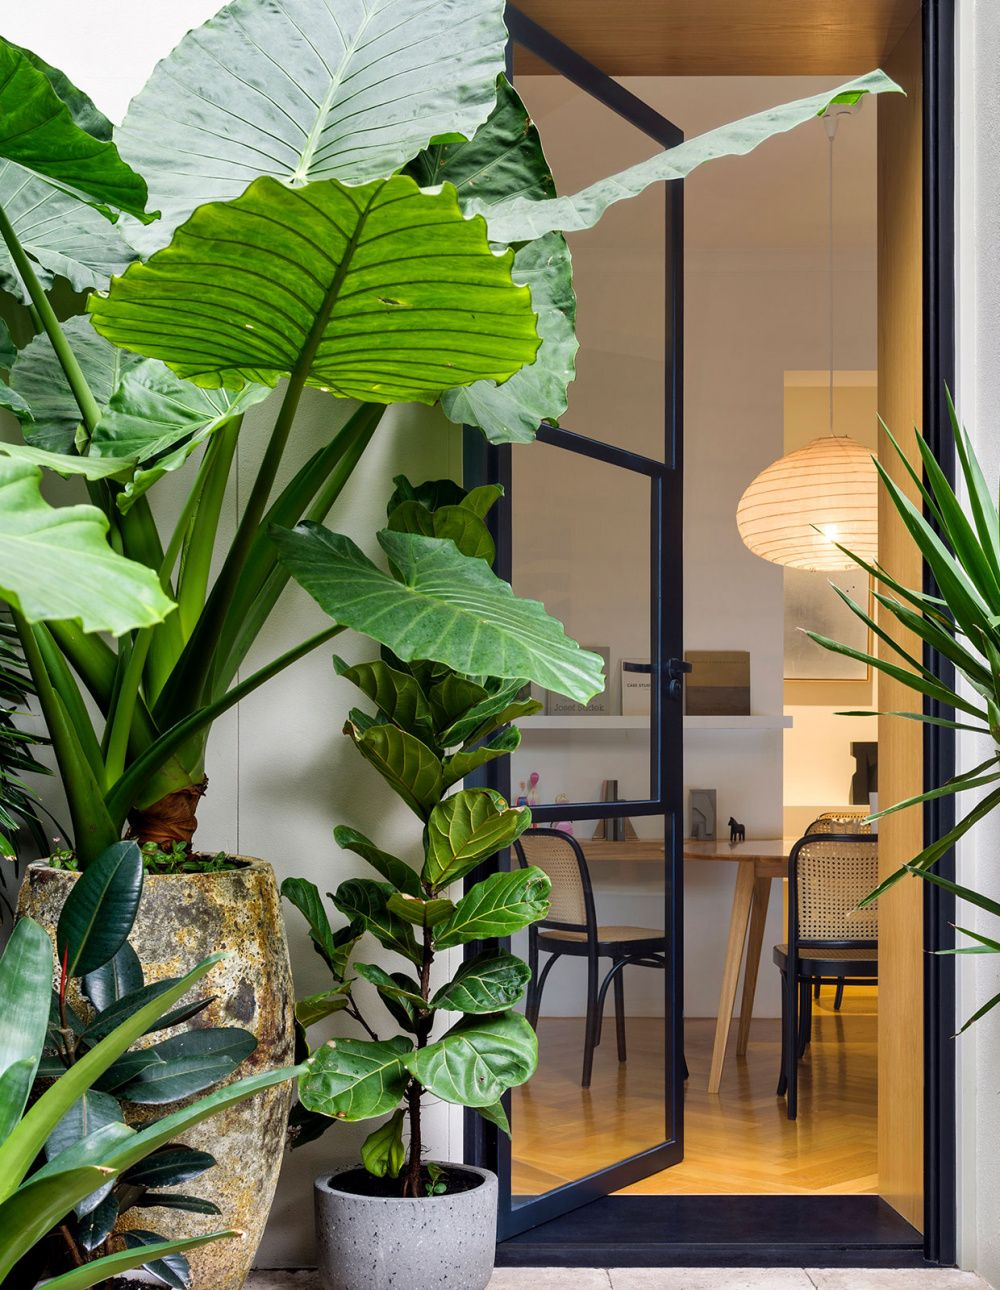 Brcar Morony Architecture Transforms A 1970s Sydney Apartment